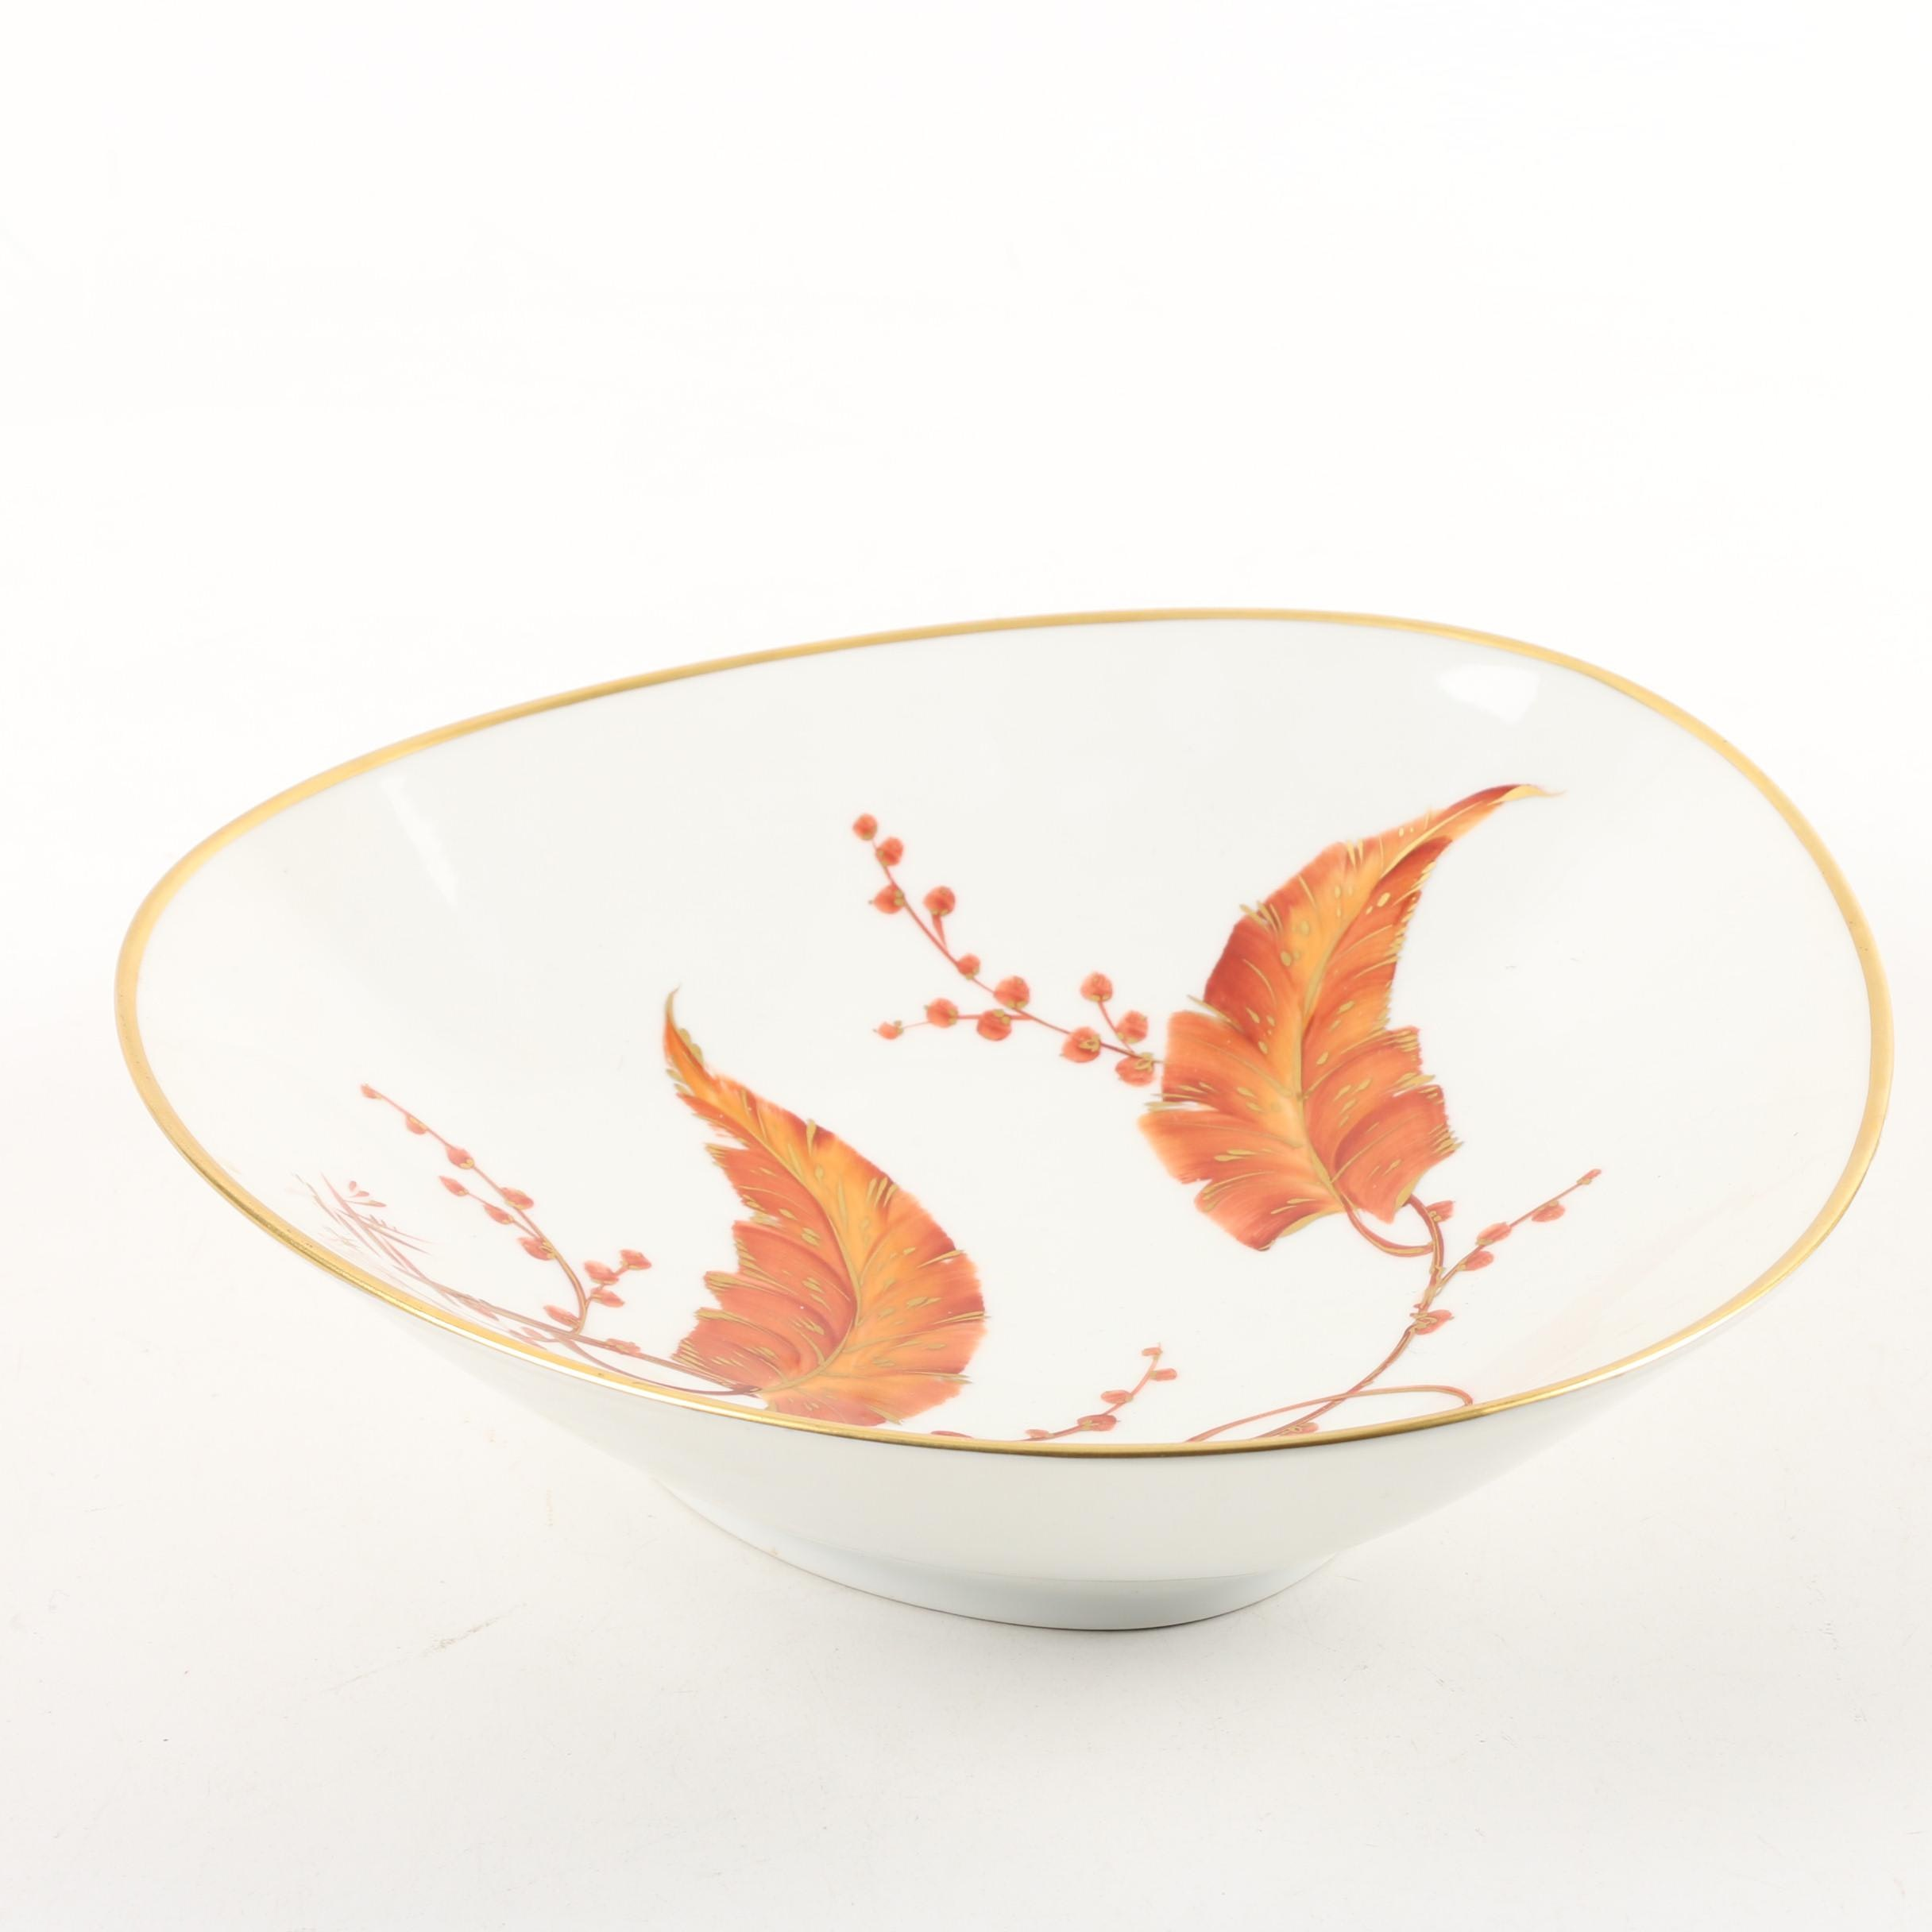 Vintage Rosenthal Hand-Painted and Gilded Porcelain Bowl